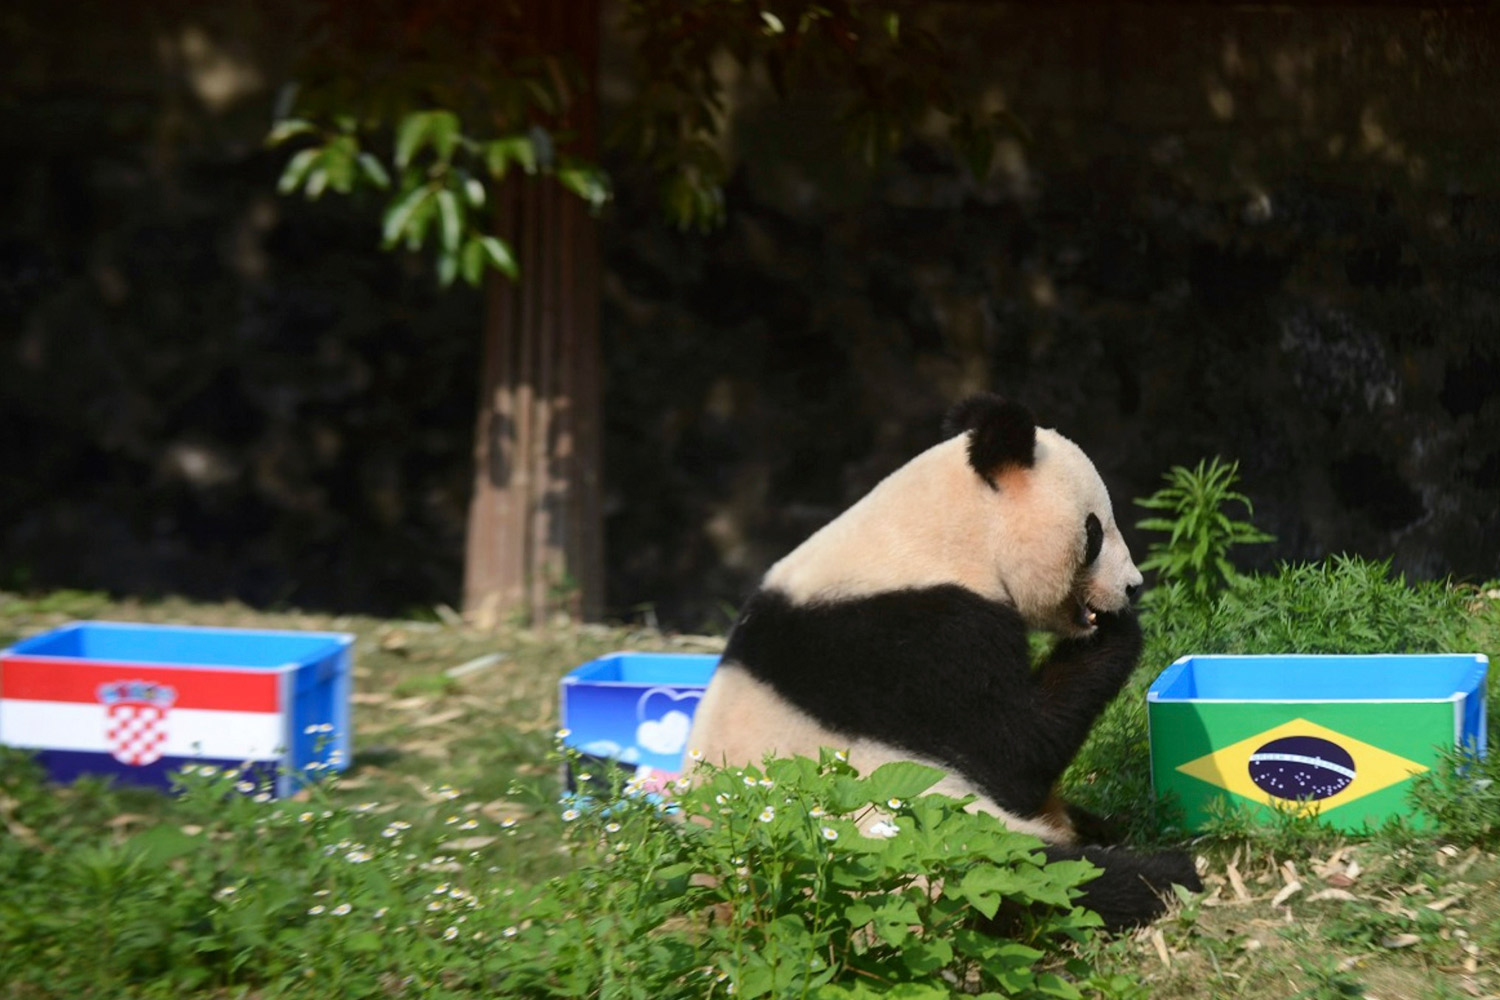 Giant panda Ying Mei sits next to a box of food with the Brazilian flag on it, during an event called  Panda Predicts World Cup Results , ahead of the 2014 World Cup opening match between Brazil and Croatia, in Yangzhou, Jiangsu province, June 12, 2014.